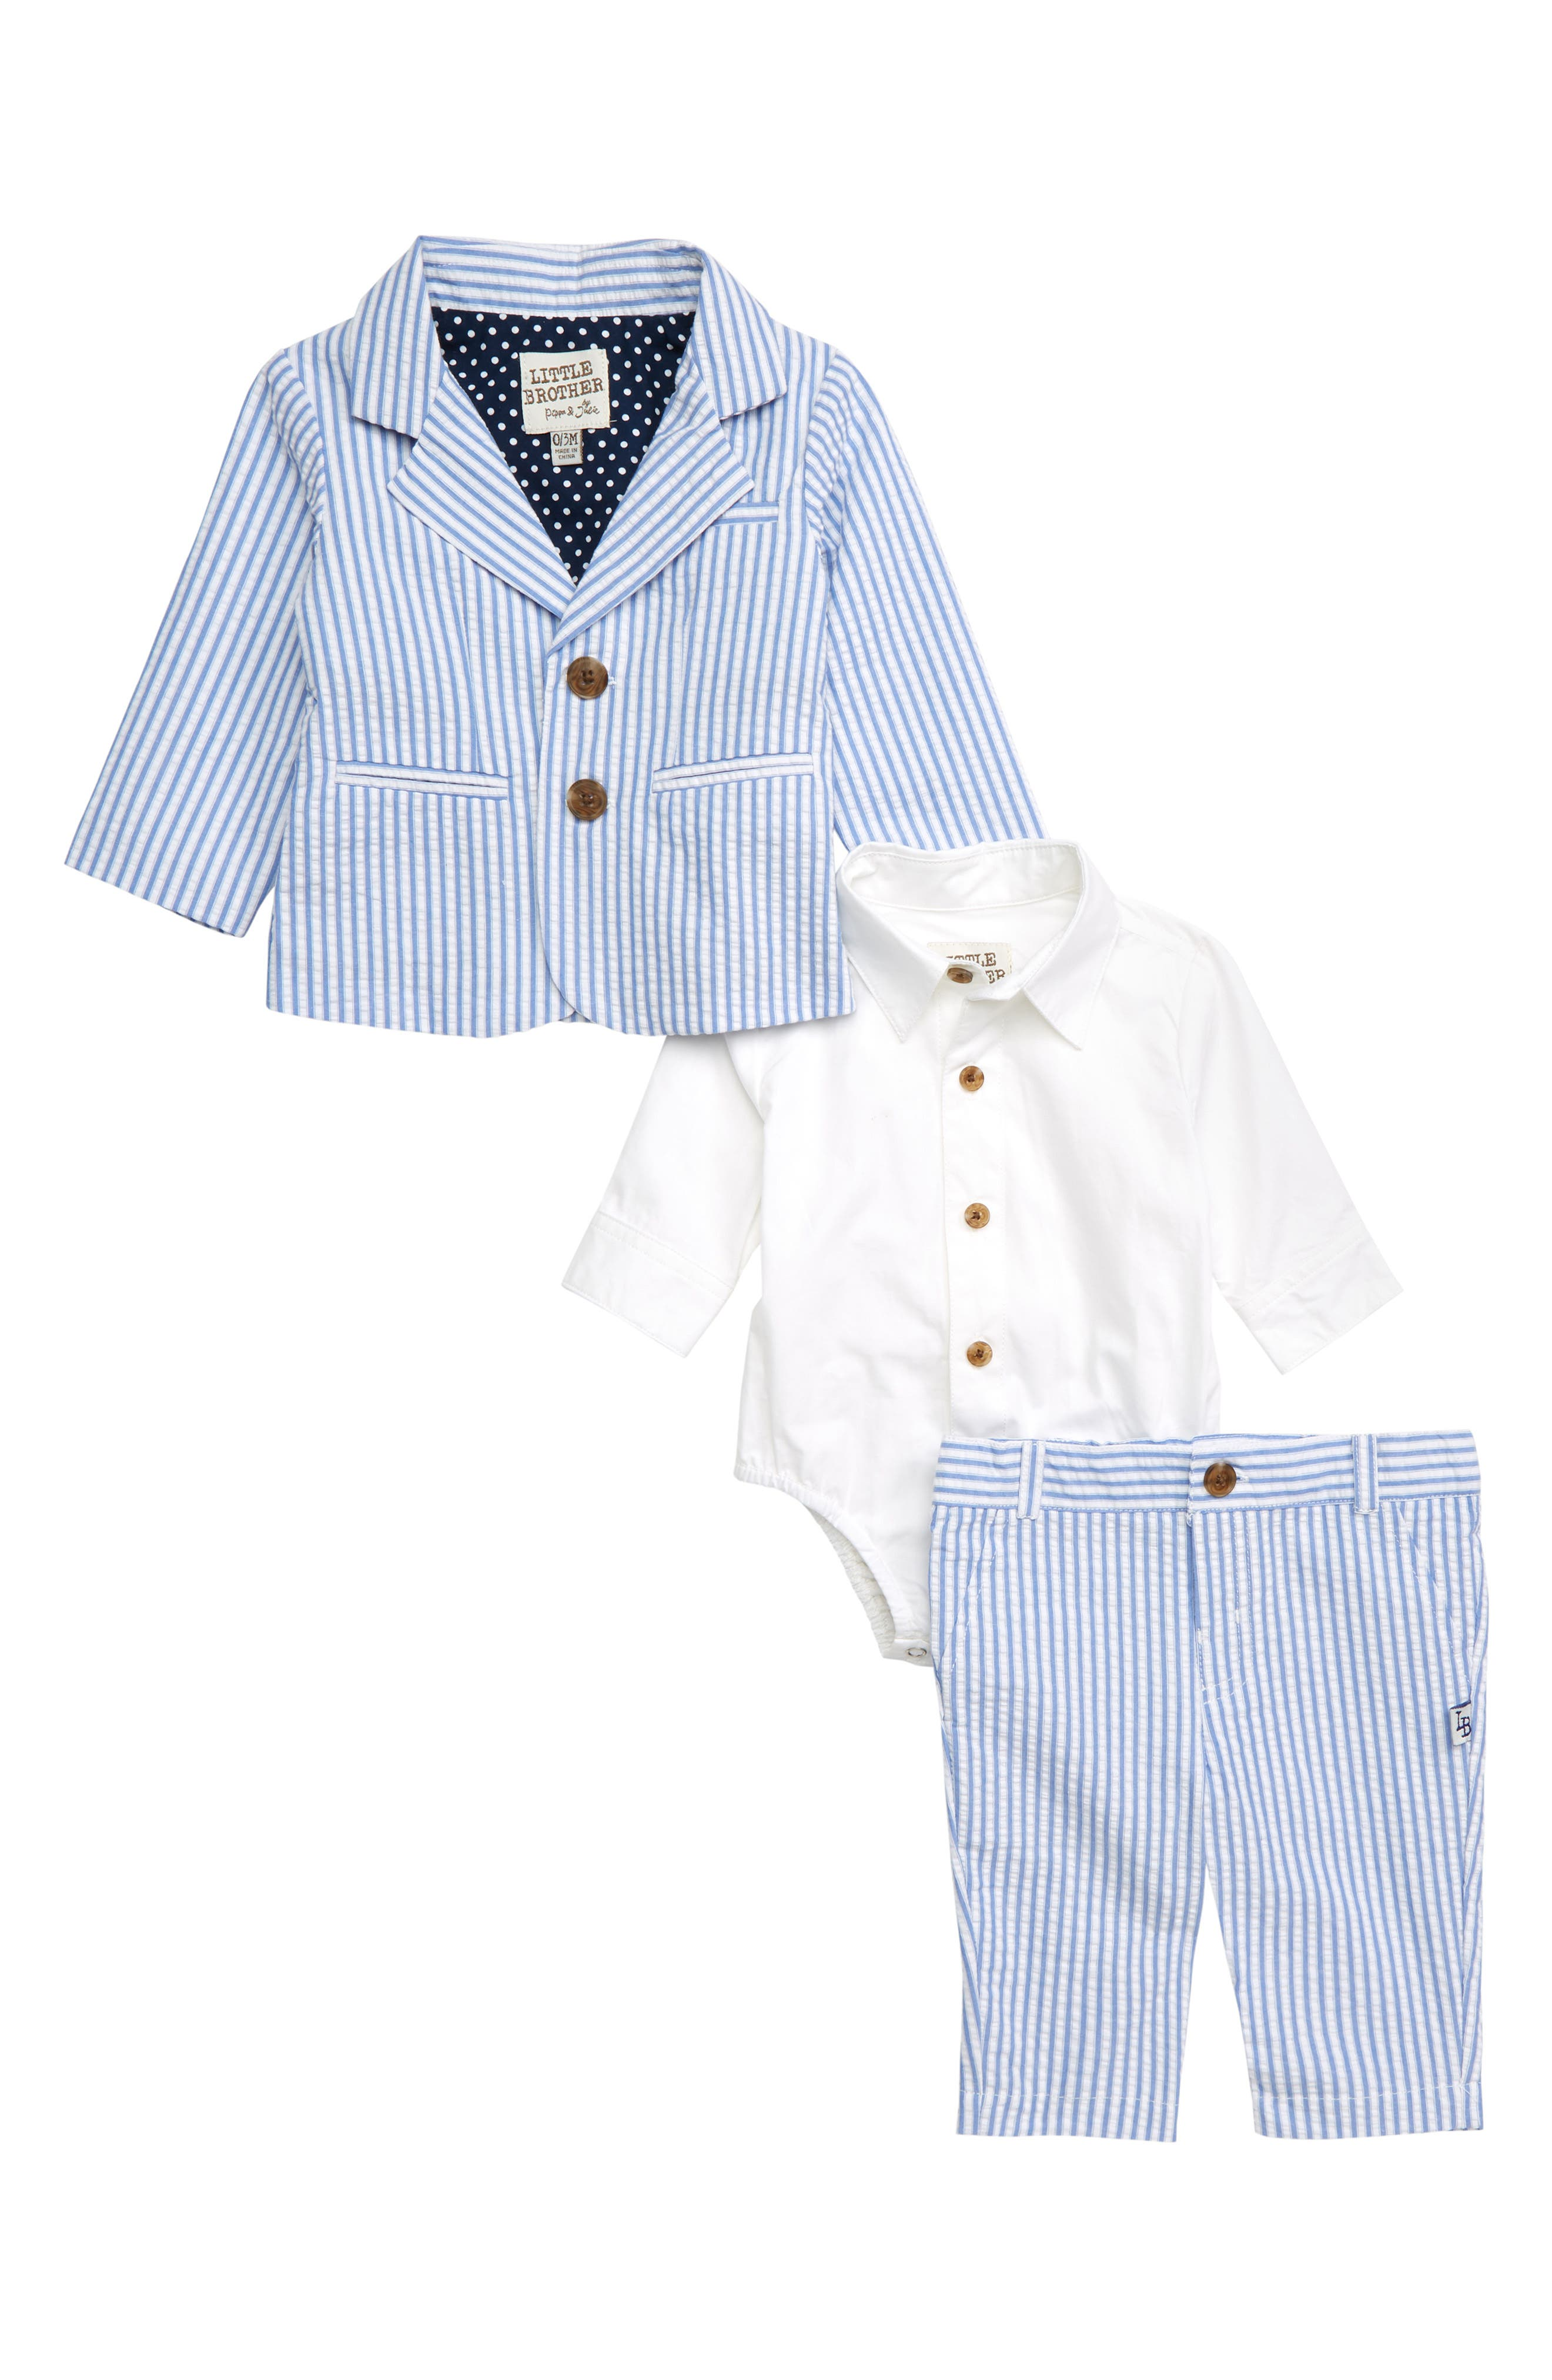 LITTLE BROTHER BY PIPPA & JULIE Seersucker Suit Set, Main, color, BLUE/ WHITE